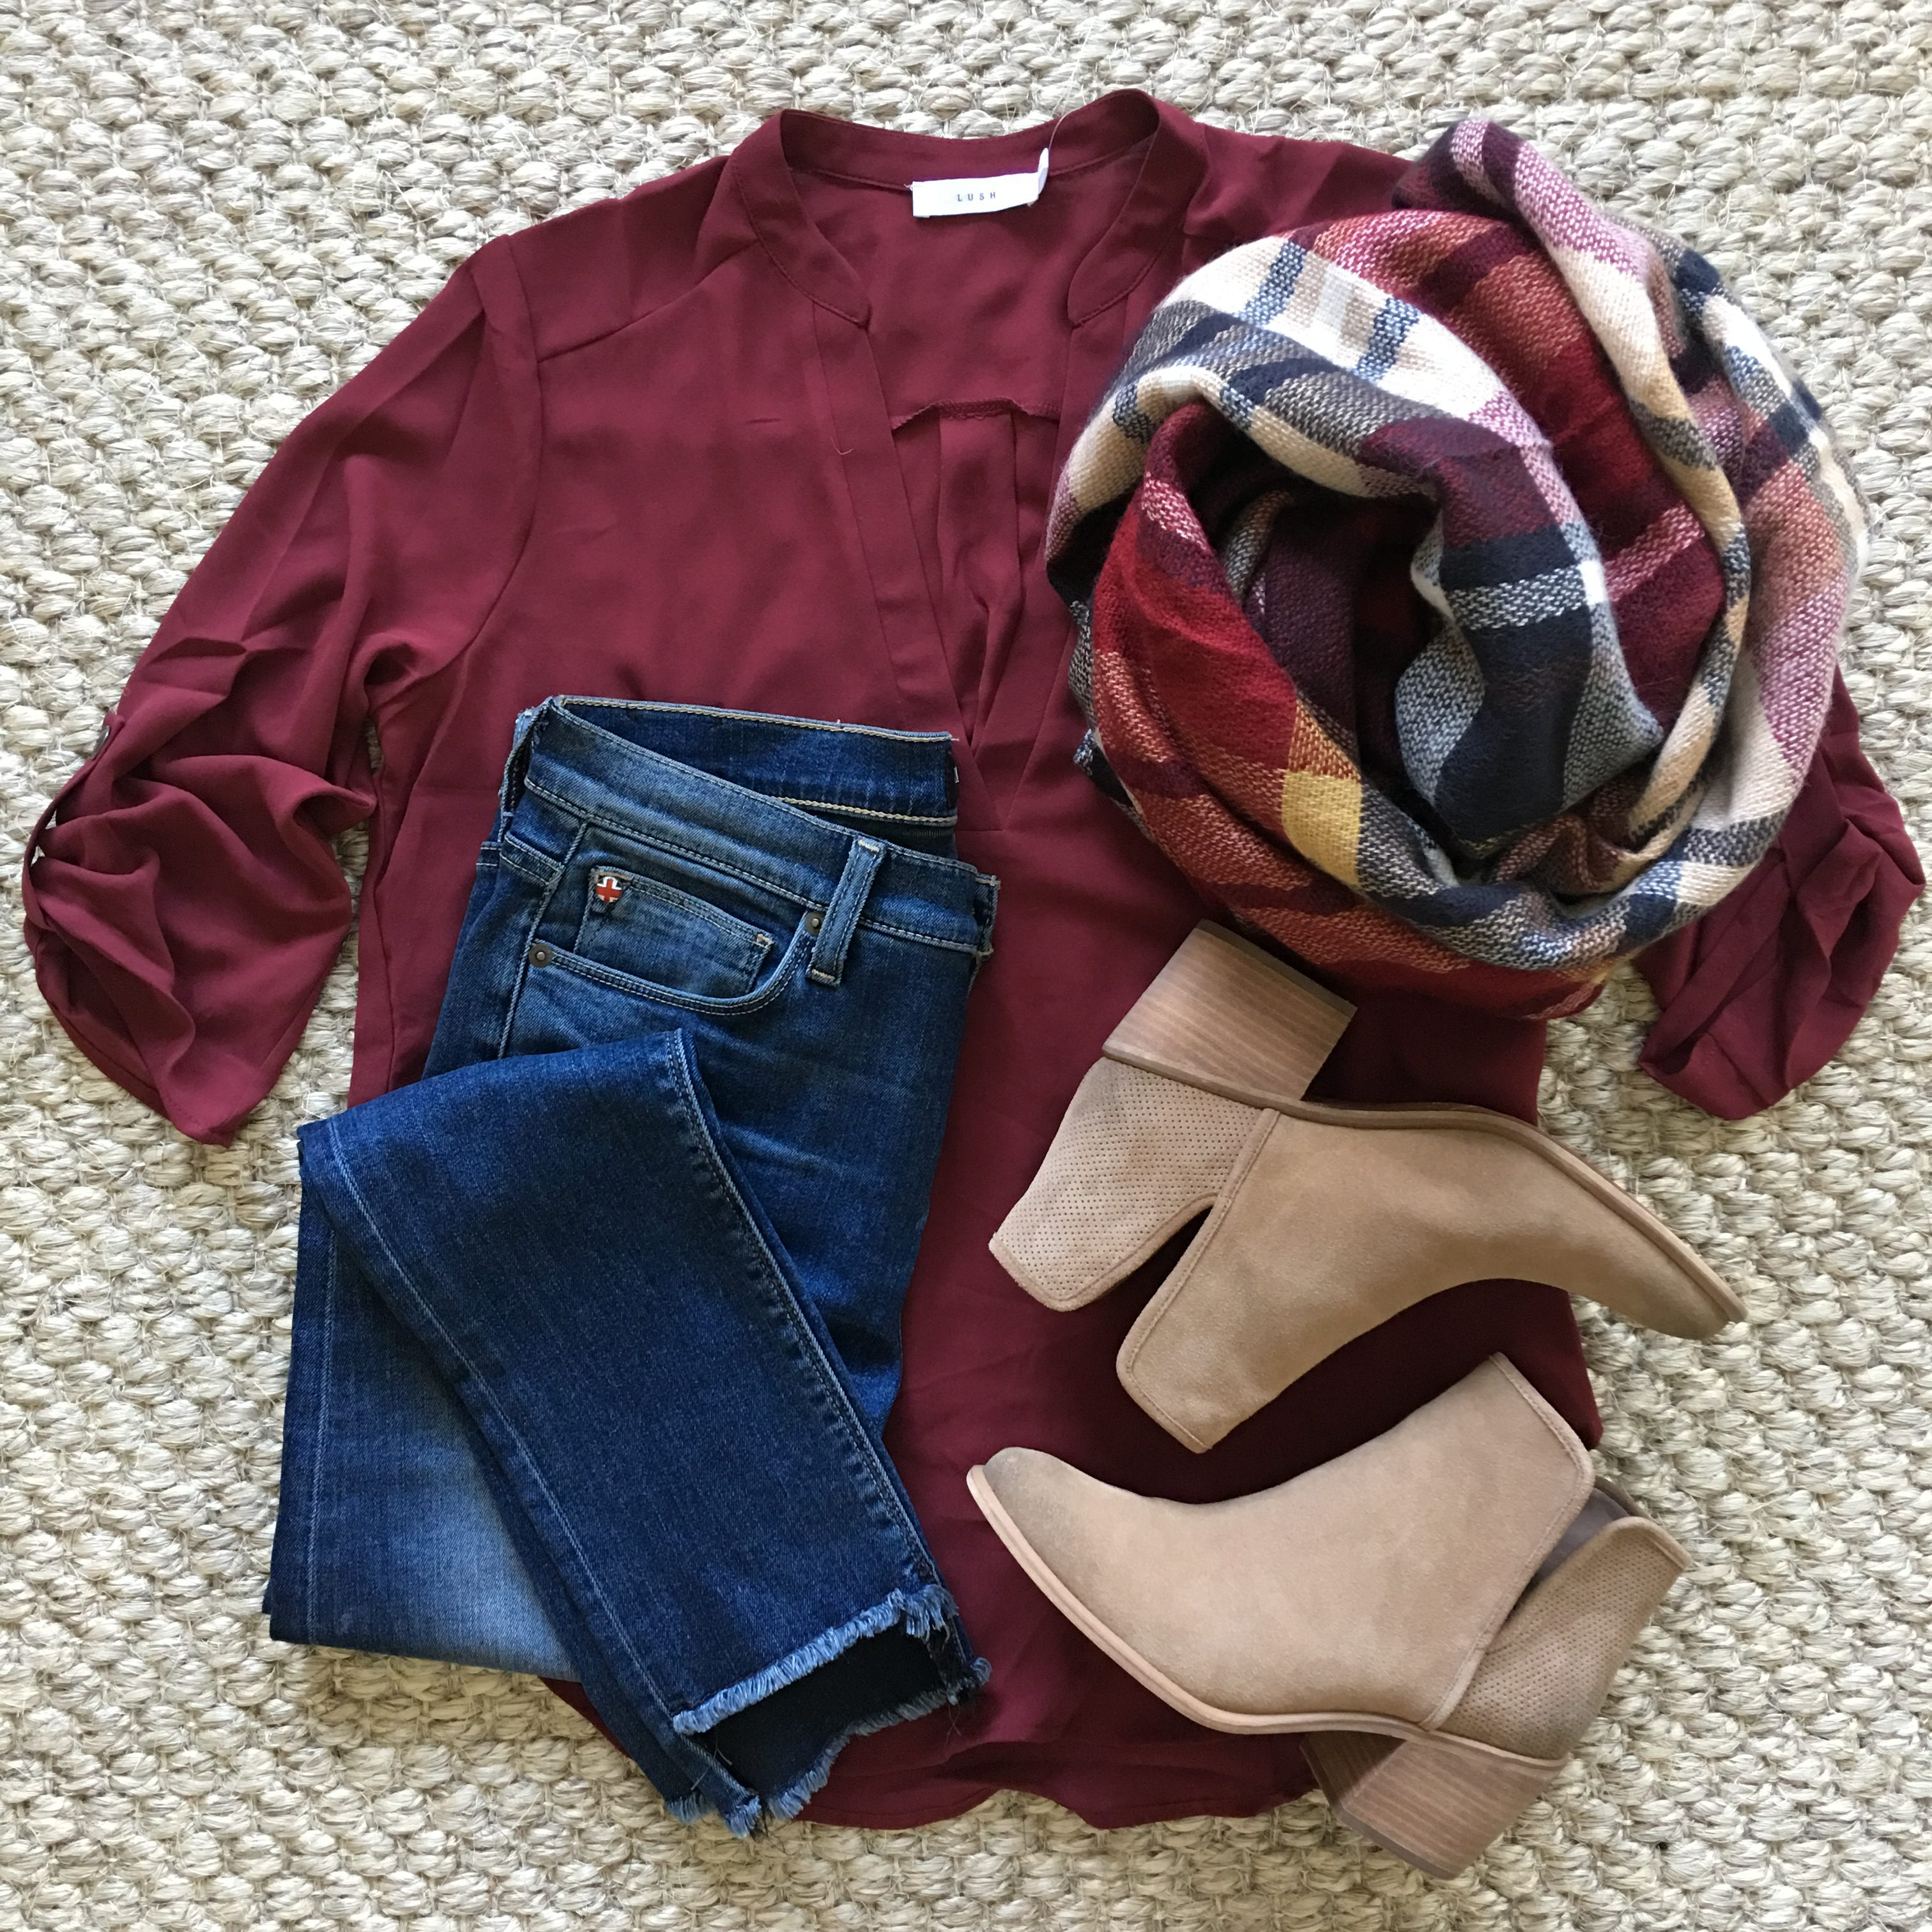 nsale Lush top and scarf